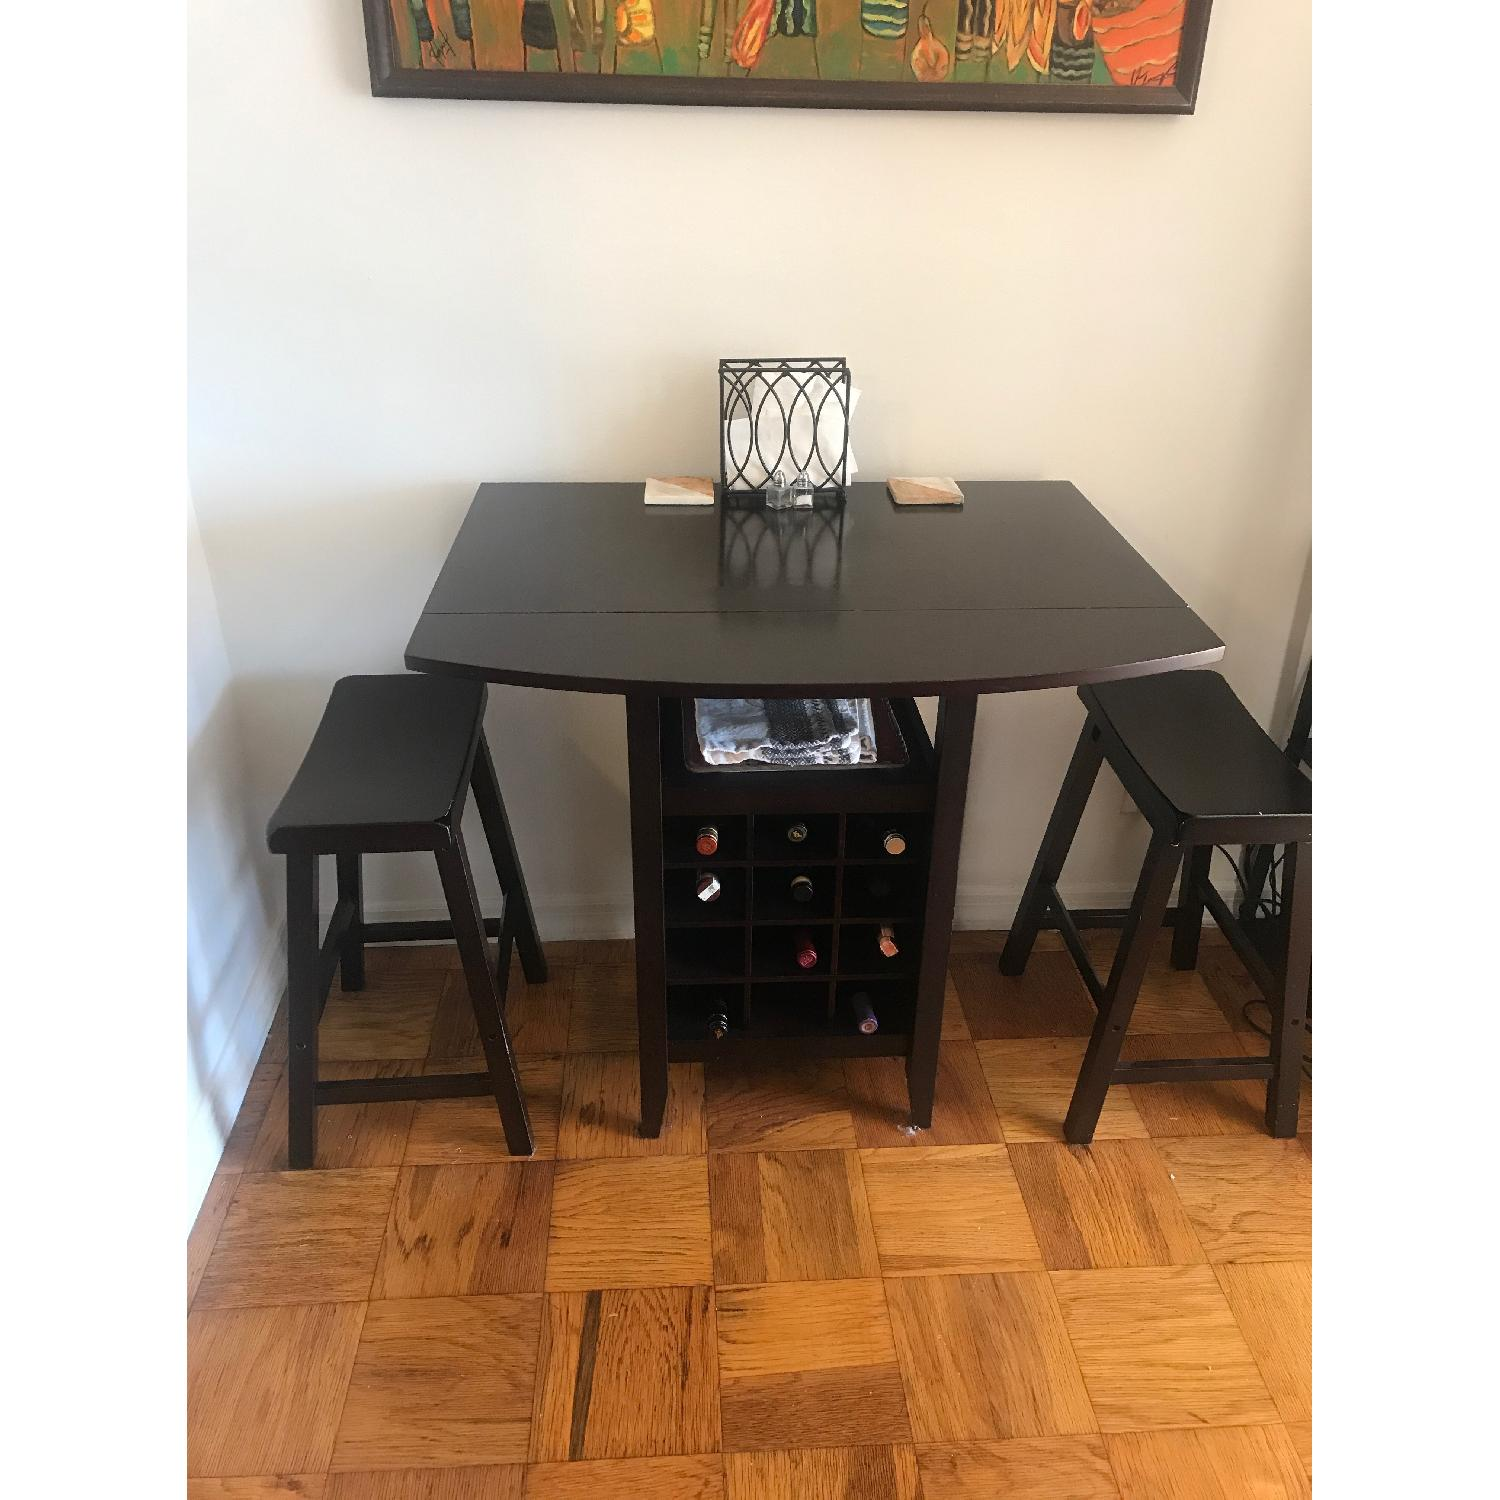 Baxton Studio 3-Piece Drop-Leaf Dining Set w/ Wine Rack - image-1